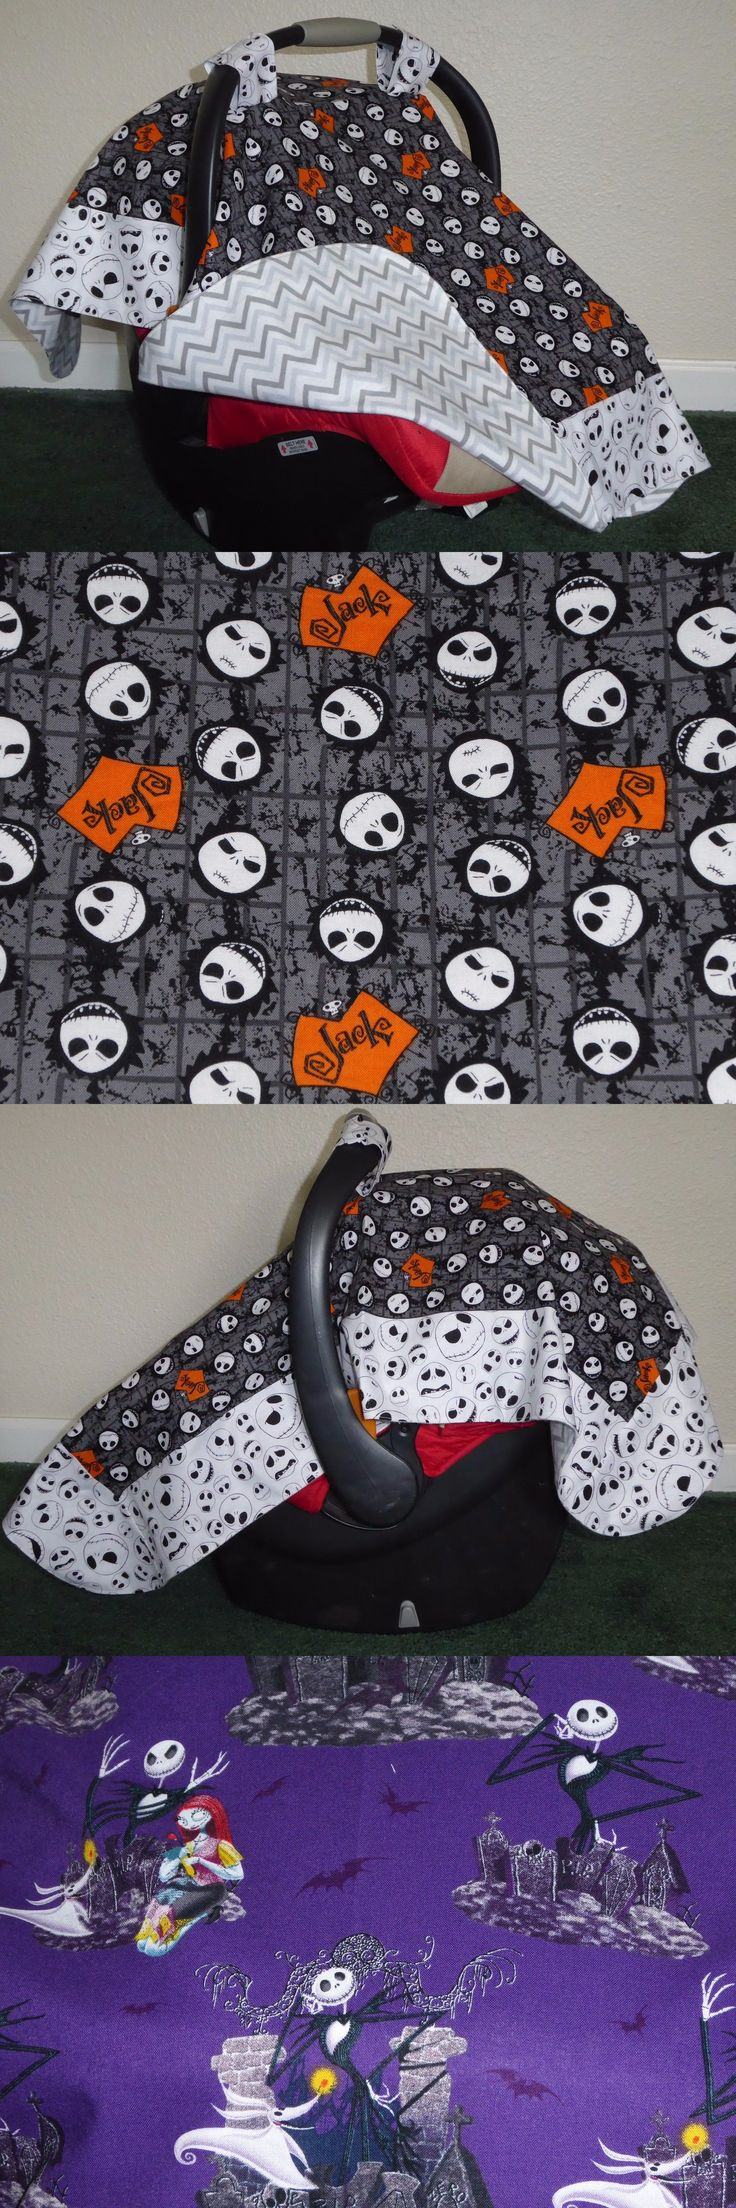 Car Seat Accessories 66693: **Nightmare Before Christmas** Handmade Baby Infant Car Seat Canopy-Cover -> BUY IT NOW ONLY: $34.99 on eBay!